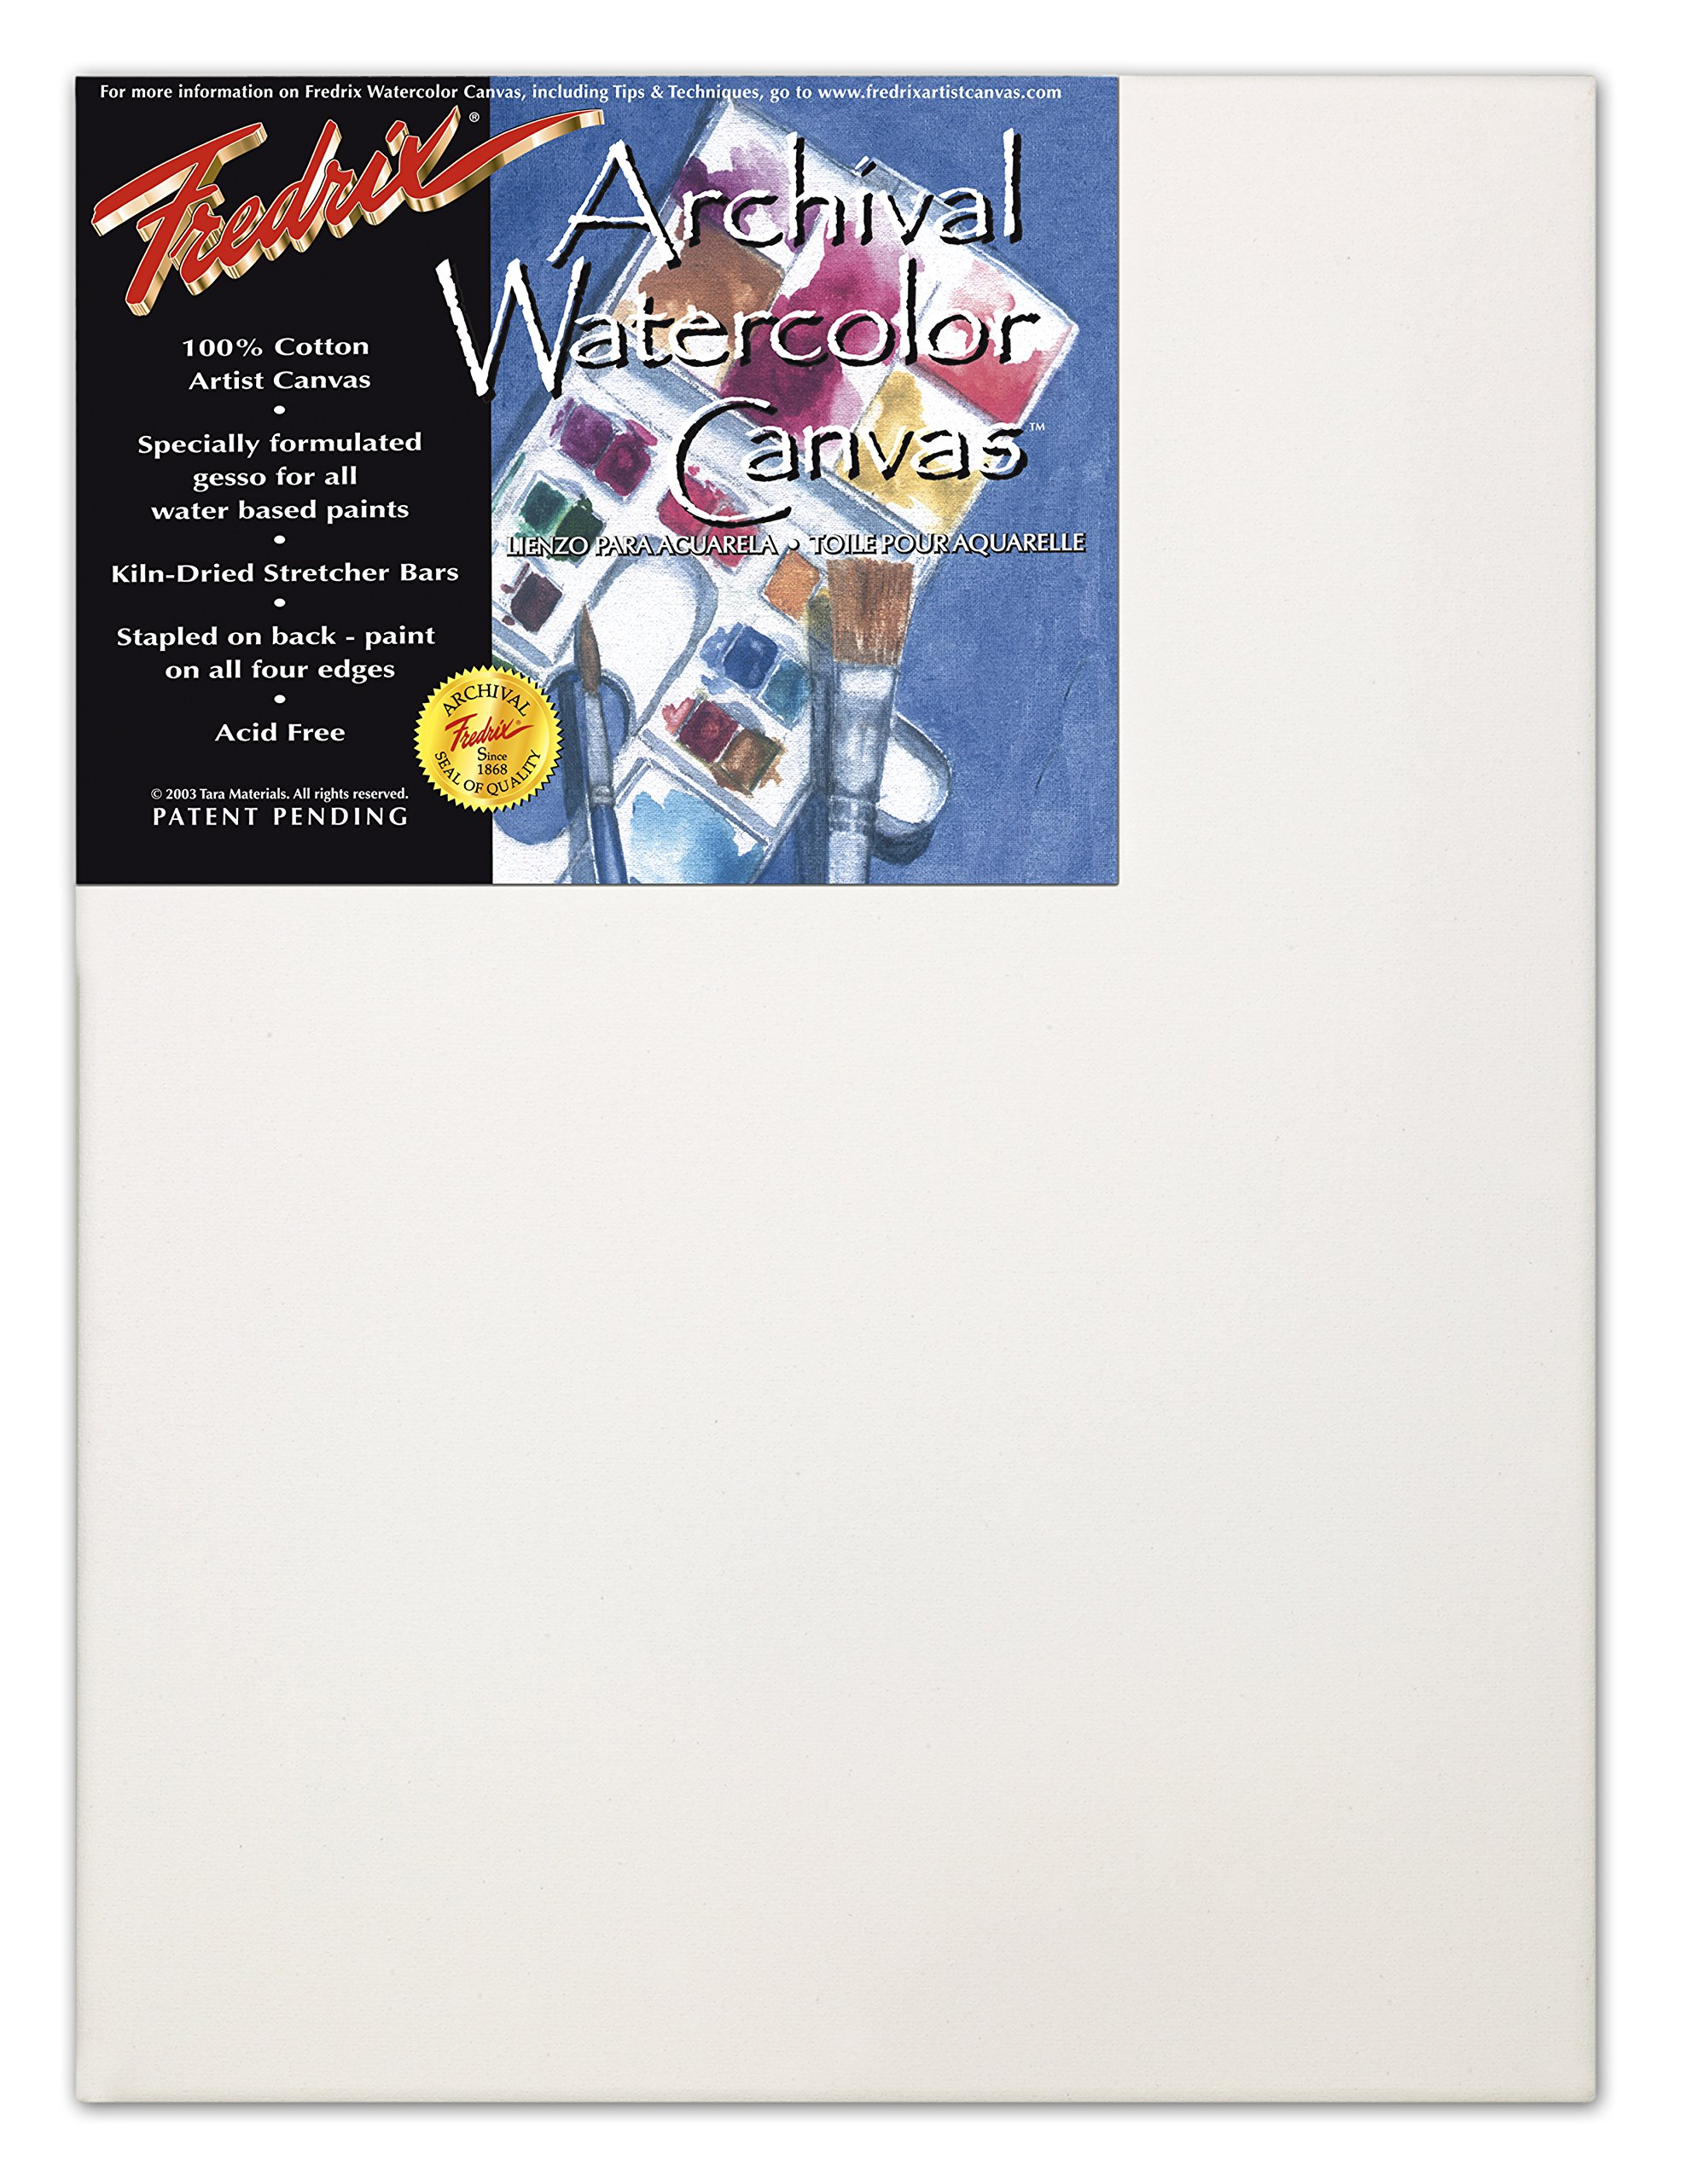 Fredrix 5534 12 by 16-Inch Stretched Watercolor Canvas